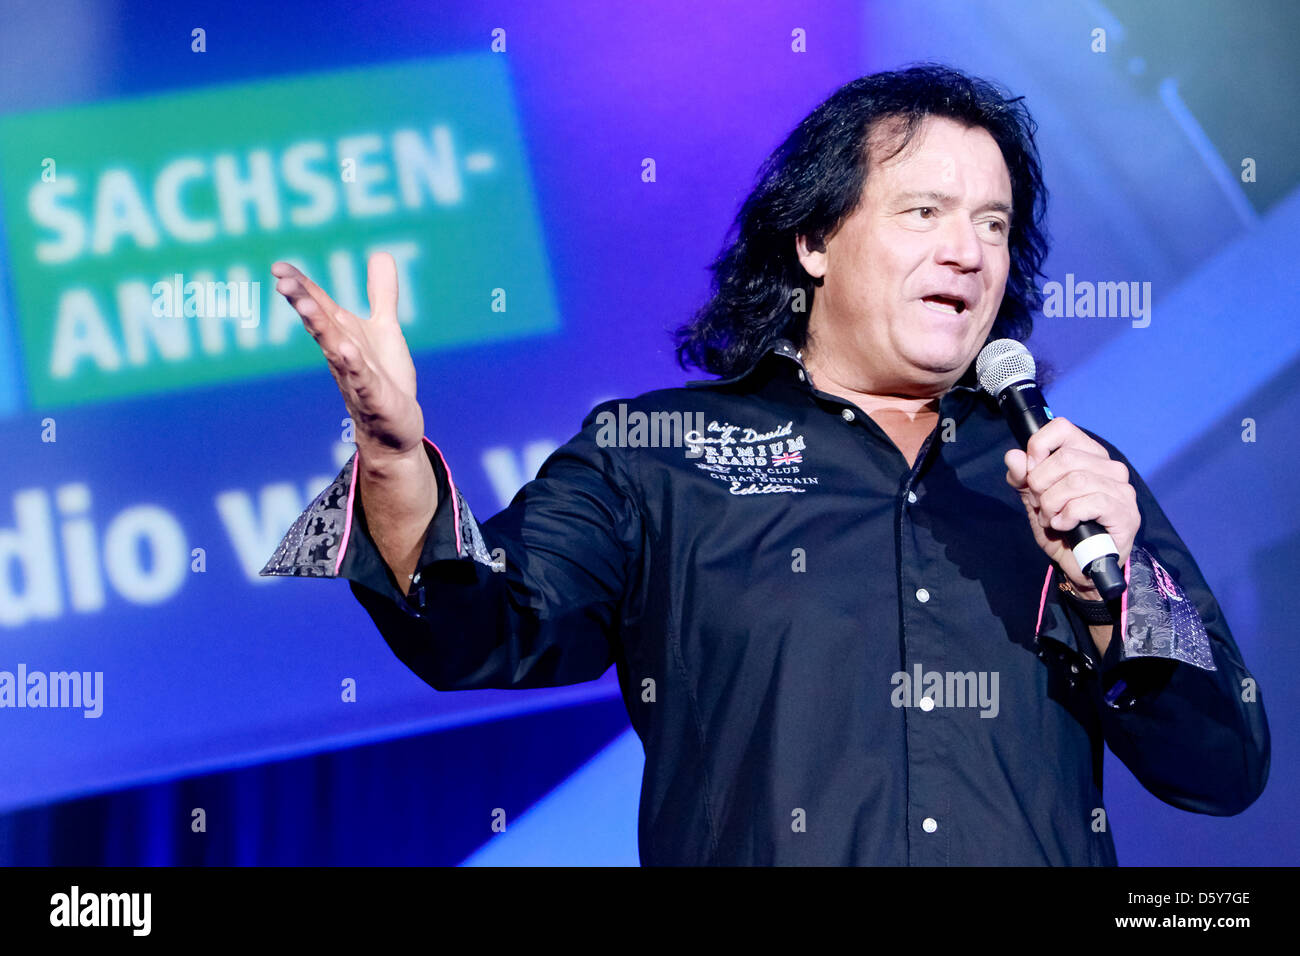 Singer Andreas Martin peforms on stage at the folk music parade of the radio station MDR Saxony-Anhalt at GETEC - Stock Image